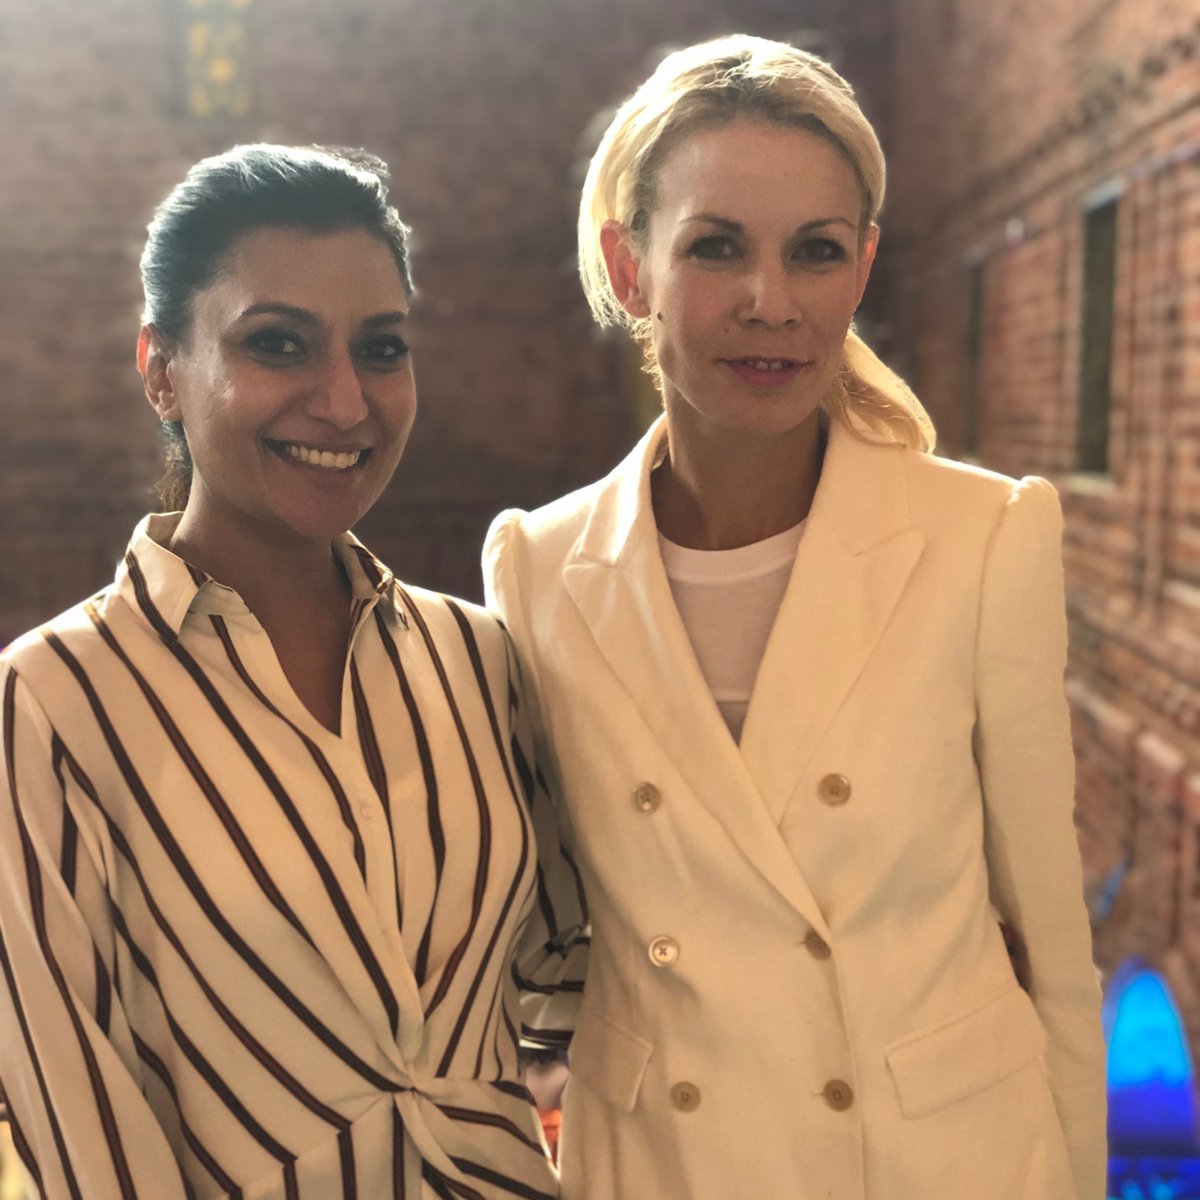 Anna Konig Jerlmyr On Twitter Met The Amazing Maliniagarwal One Of India S Biggest Influencers During Sthlmtechweek And Europe S Largest Female Hackathon Here In Stockholm So Inspiring To Learn About How She Created